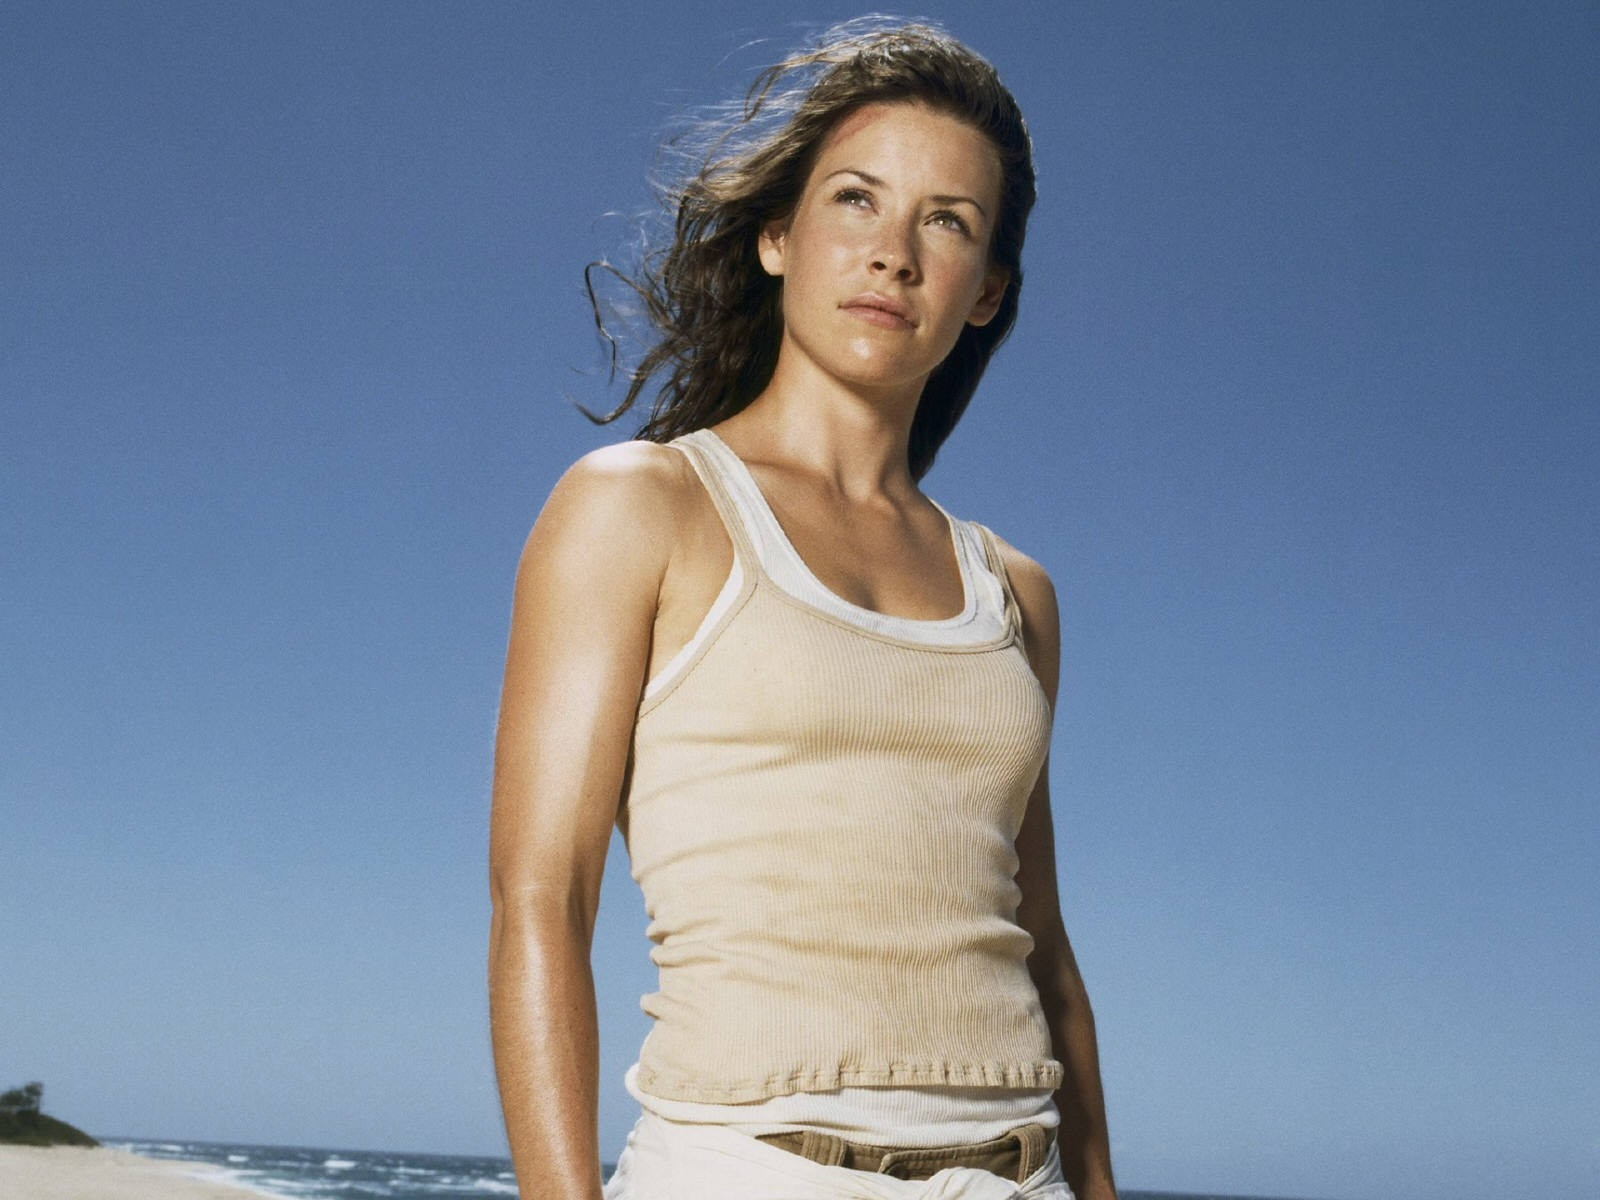 Wallpaper di Evangeline Lilly nel serial televisivo Lost